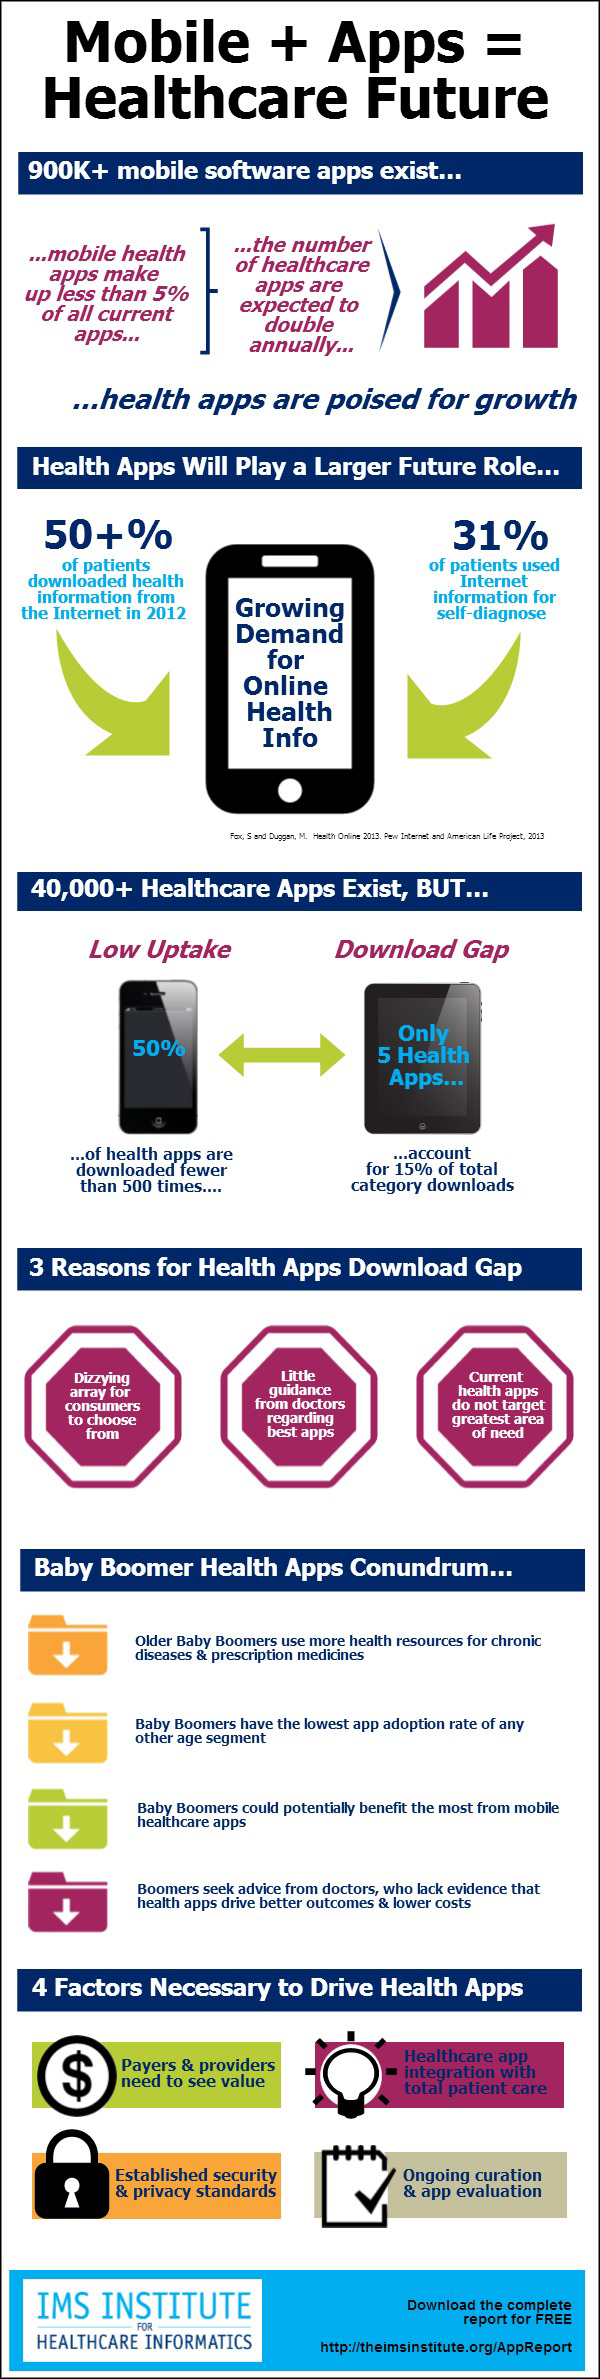 Mobile + Apps = Healthcare Future